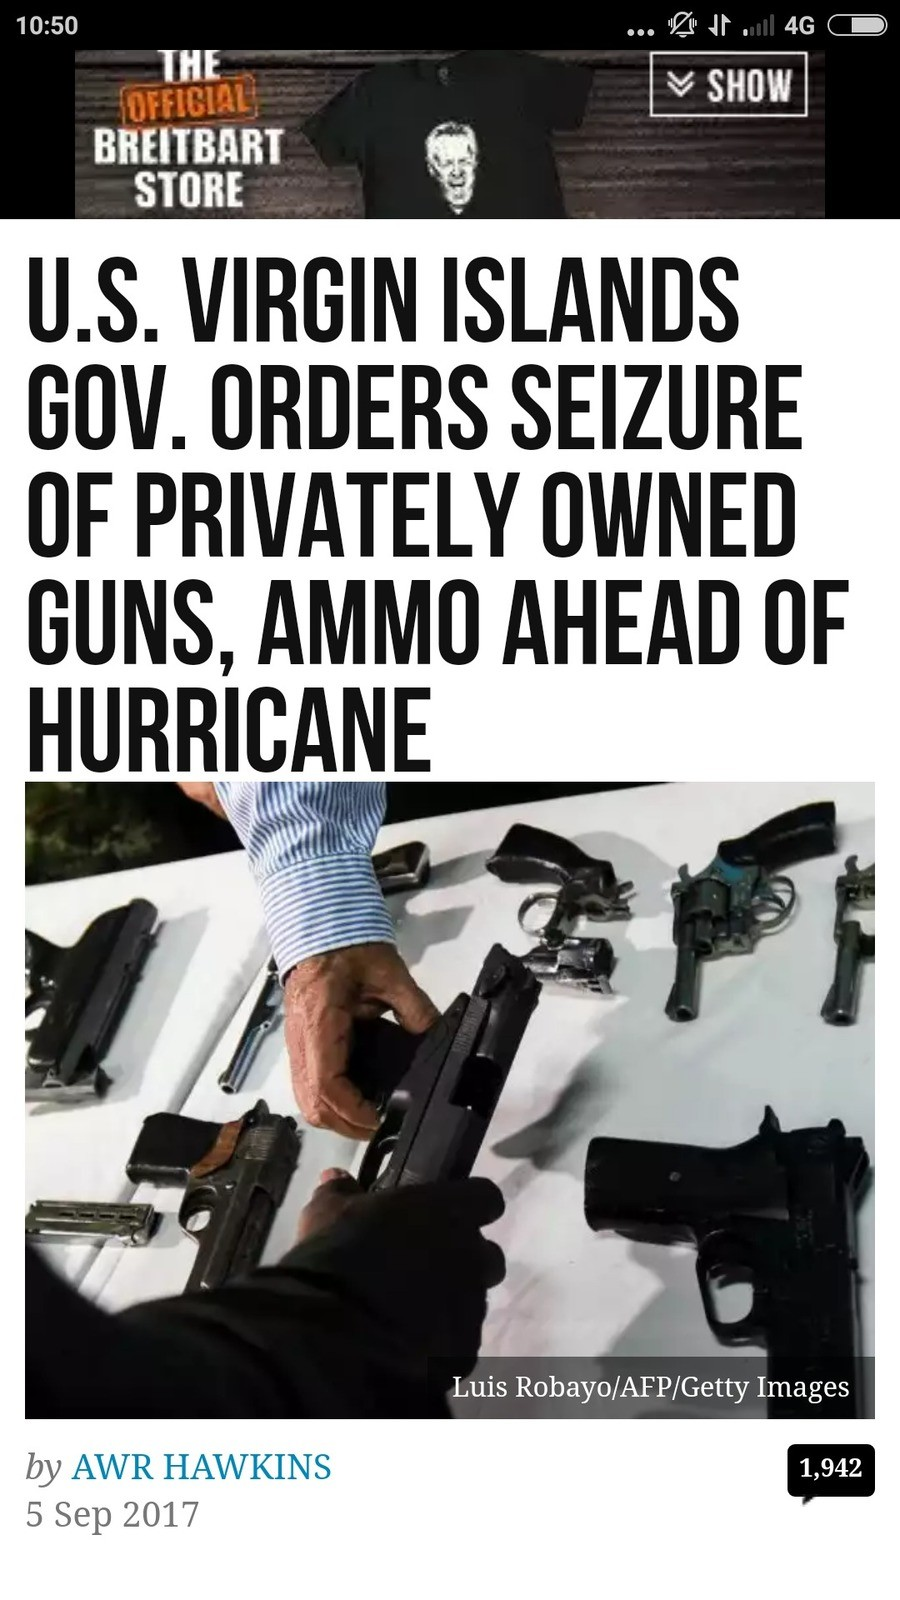 They're coming for your guns. ]www.breitbart.com/big-government/2017/09/05/gov-virgins-islands-orders-seizure-privately-owned-guns-ammo-ahead-hurricane/?utmsour